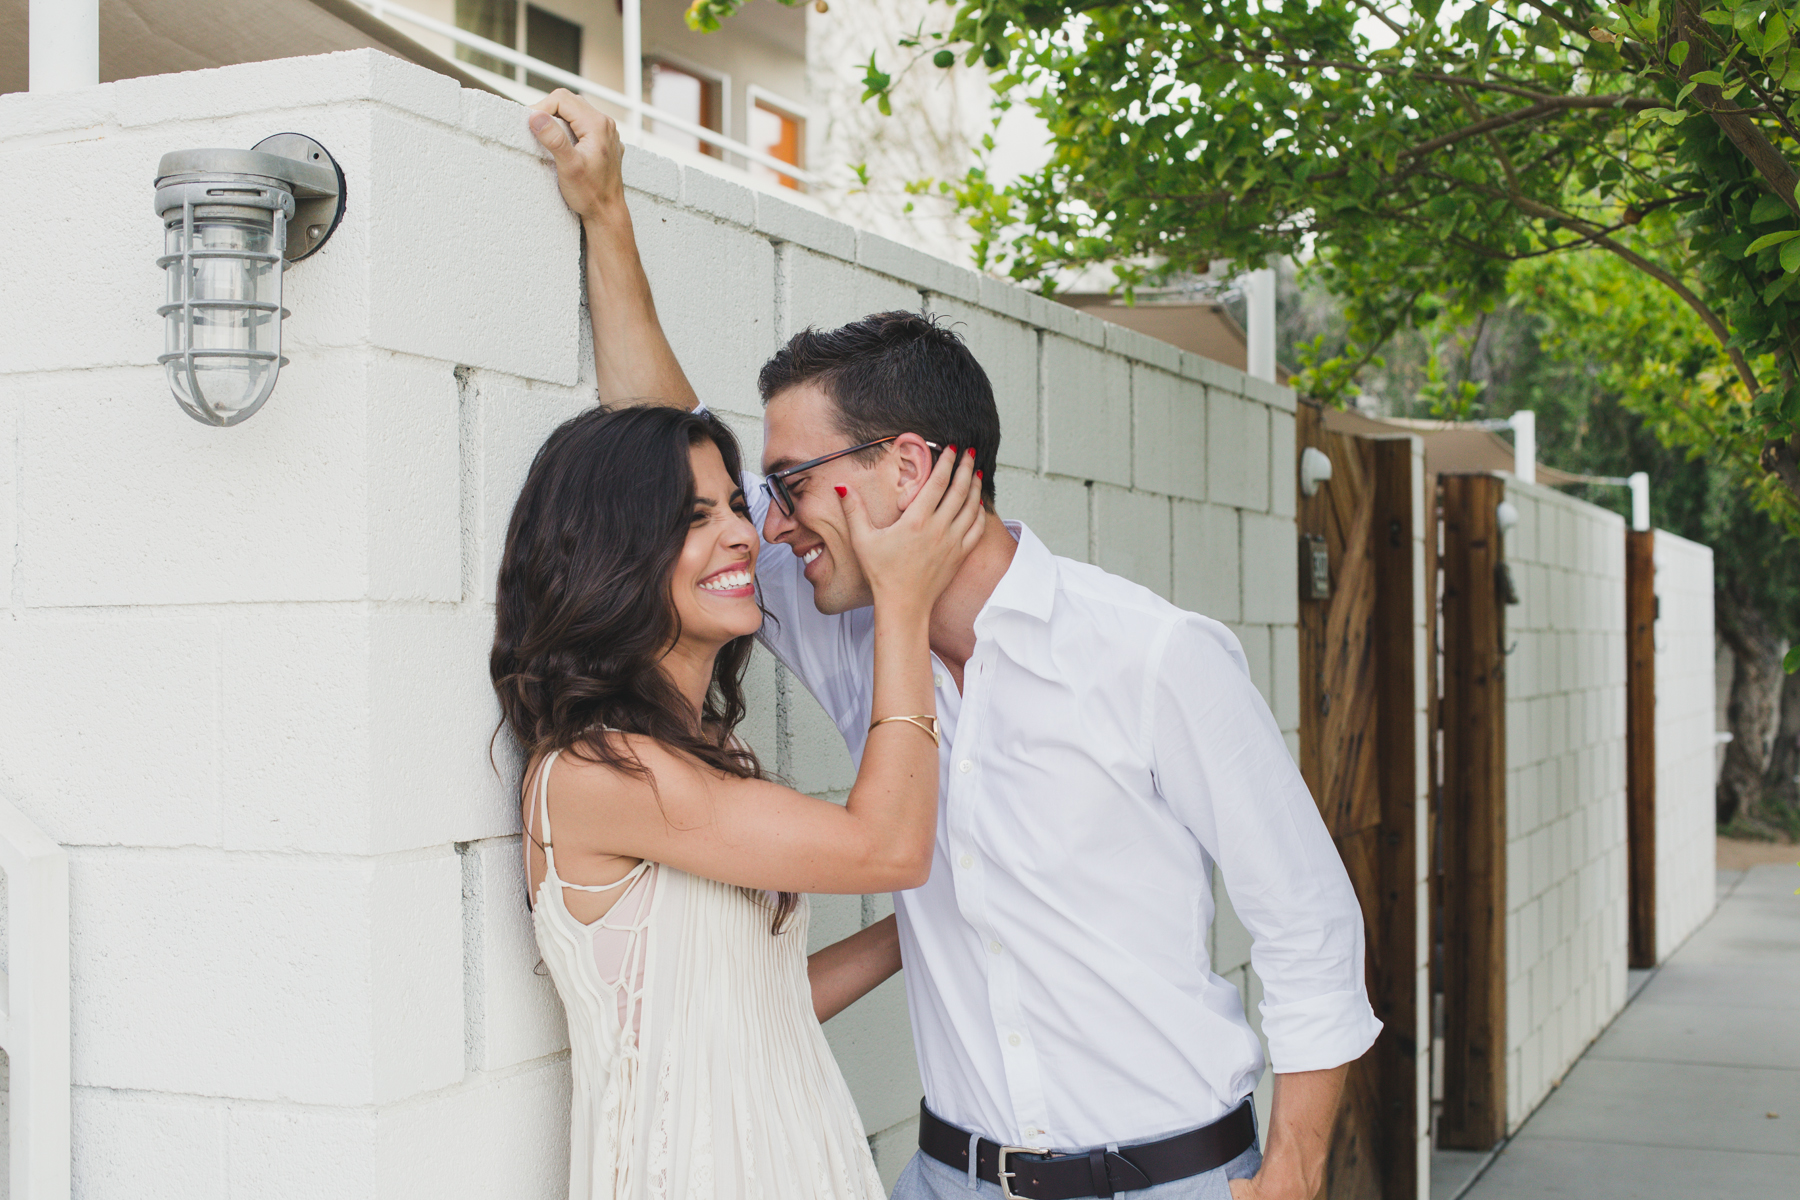 All_Days_Wonder_Palm_Springs_Engagement-40.jpg